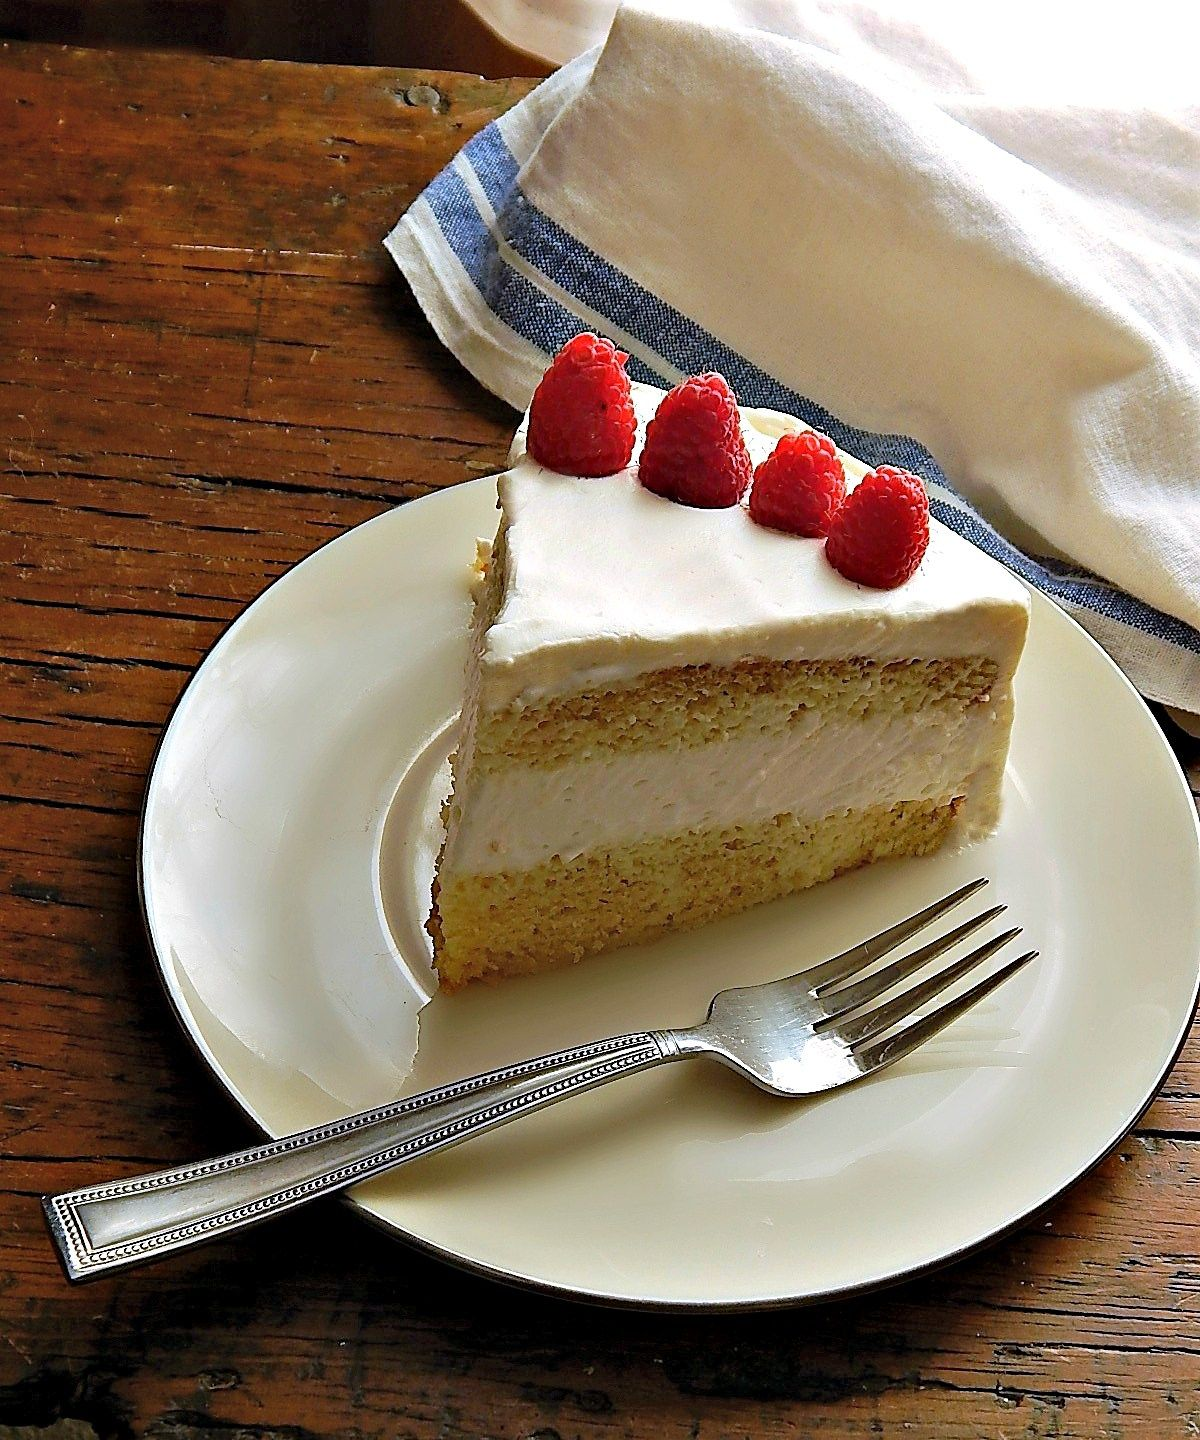 where can i buy a good tres leches cake